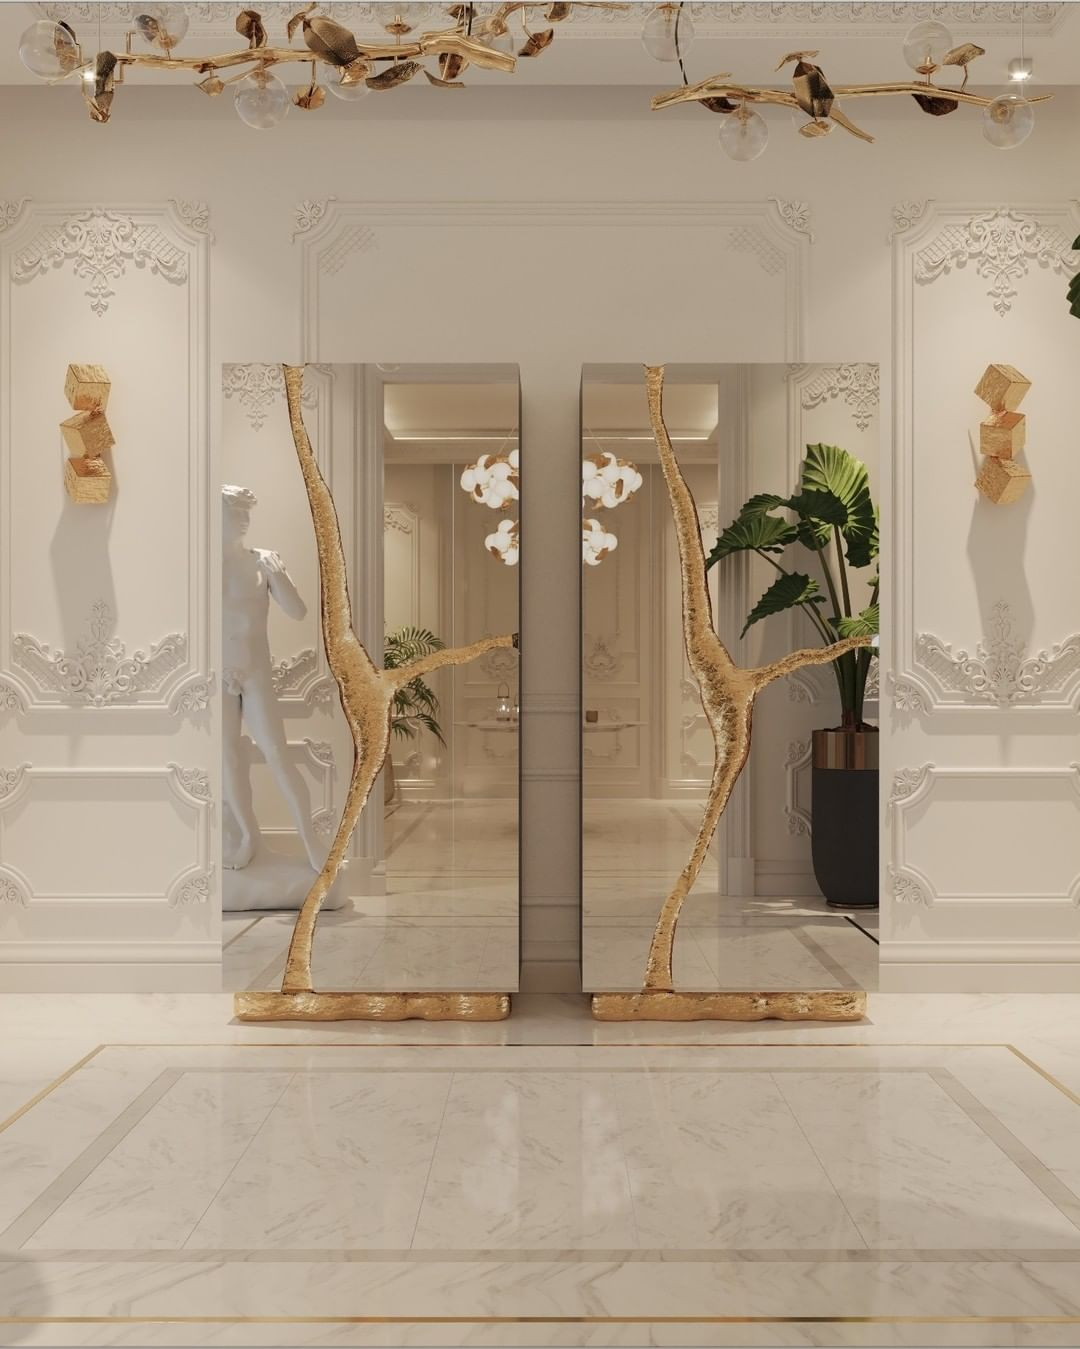 Hallway Ideas To Give Your Guests A Warm Welcome hallway ideas Hallway Ideas To Give Your Guests A Warm Welcome hallway ideas give your guests warm welcome 1